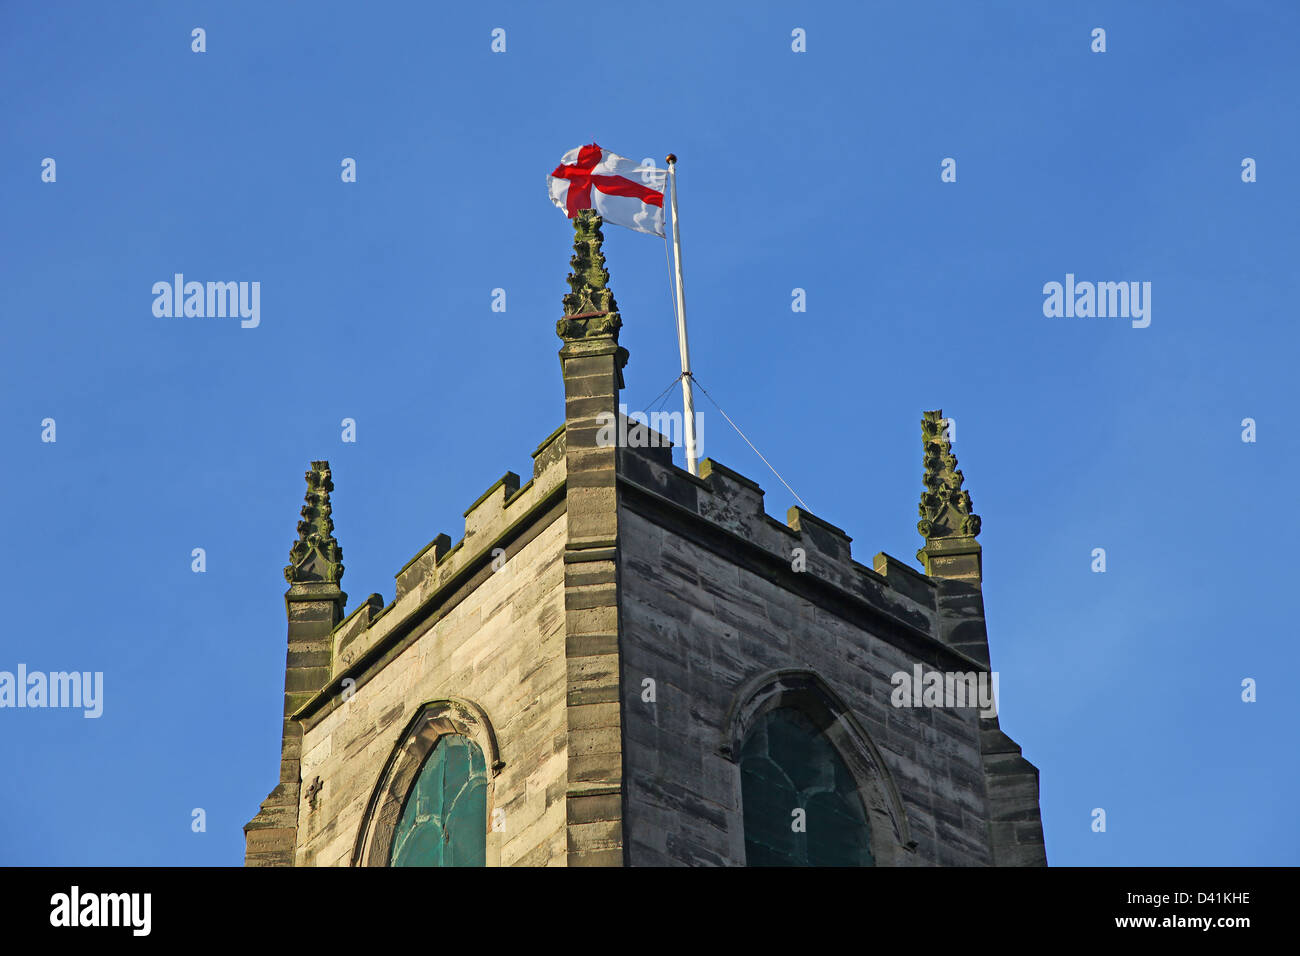 Flag of St George on a flagpole at St Giles the Abbot parish church in Cheadle Staffs Staffordshire England UK Stock Photo